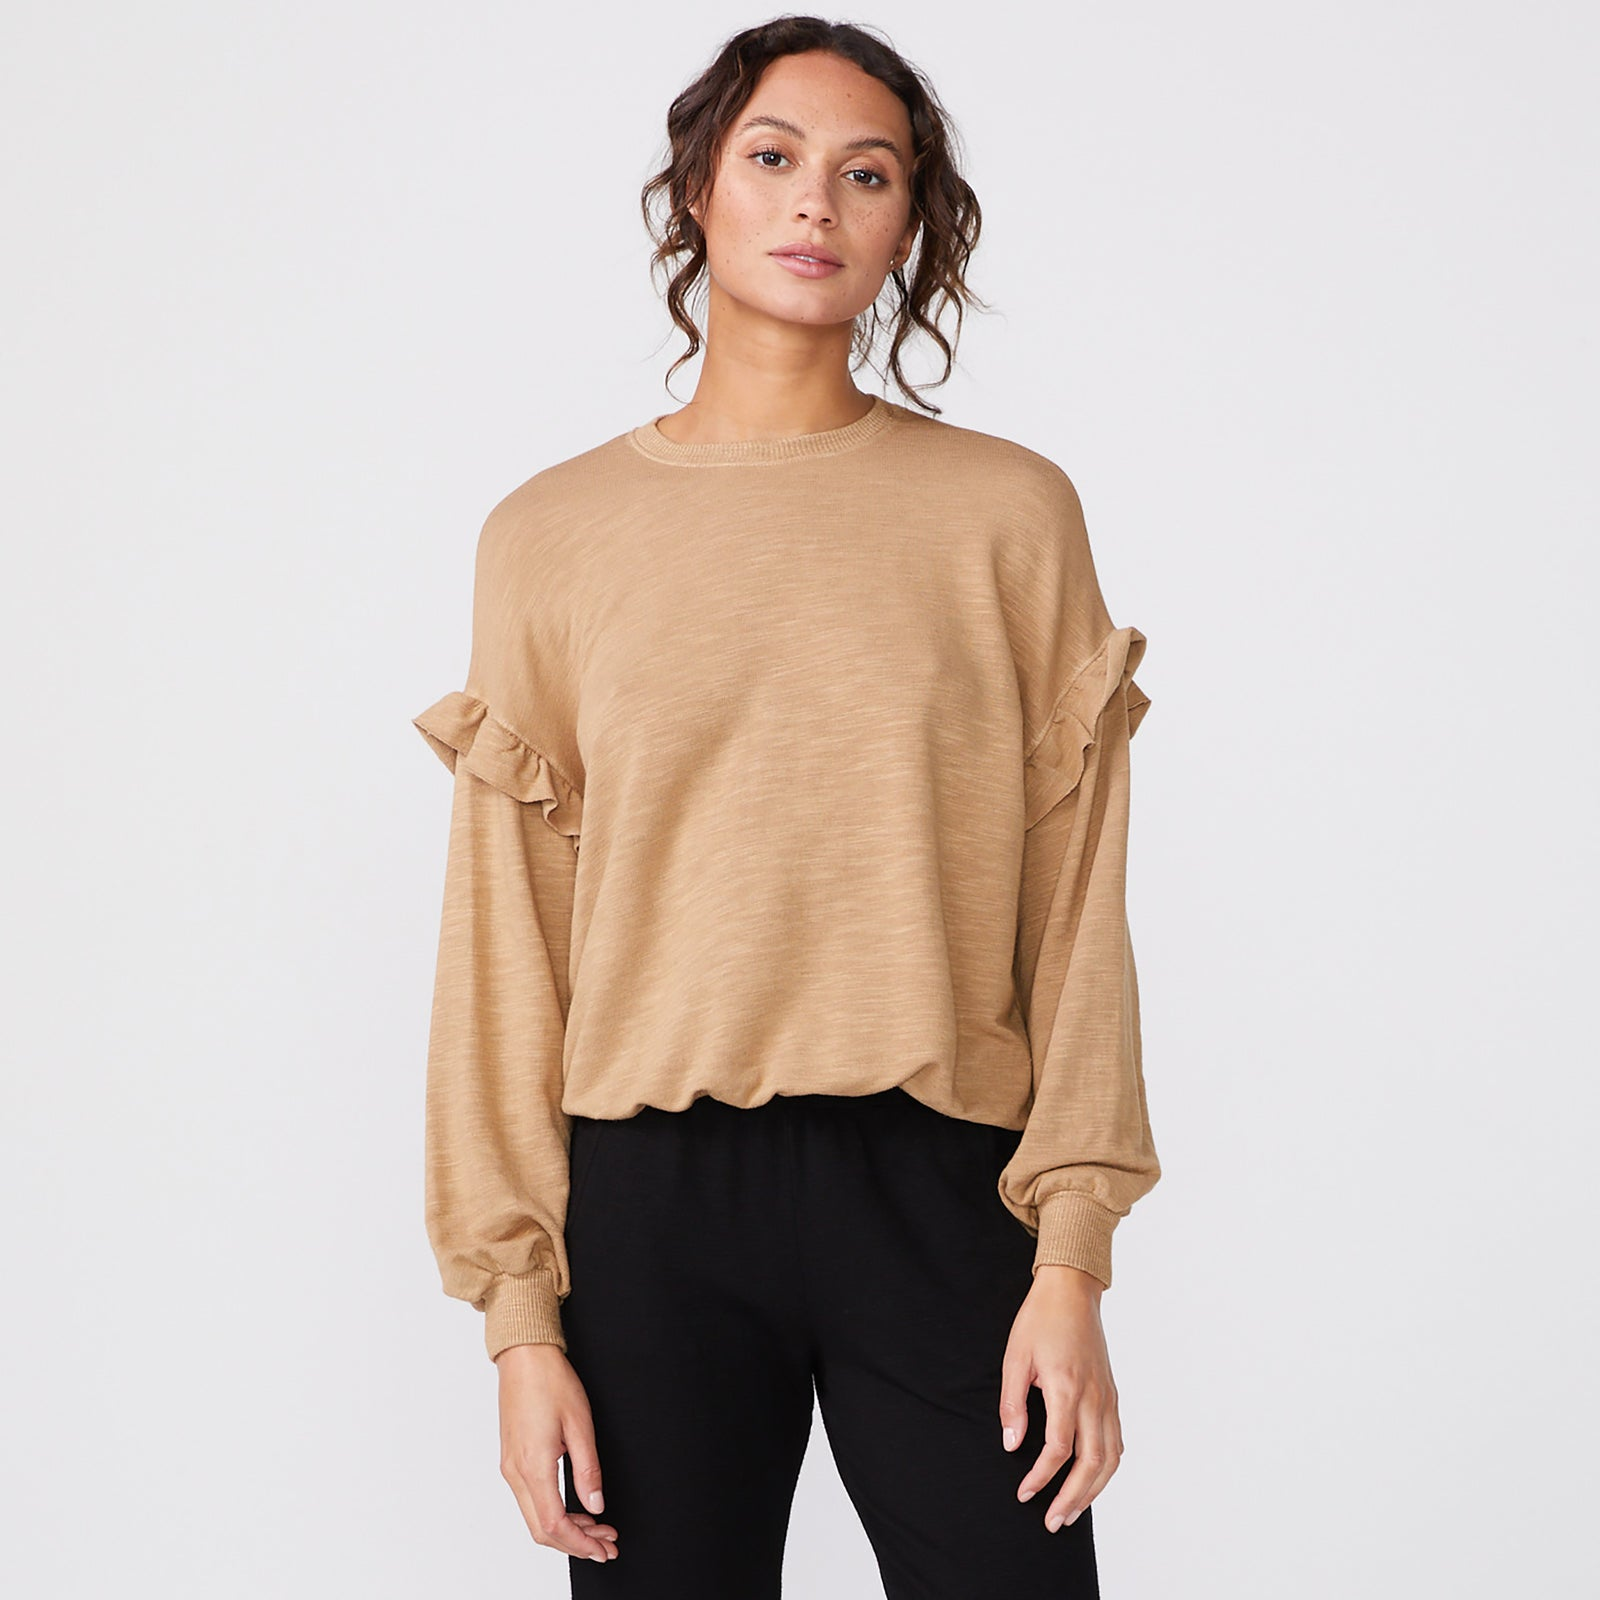 Supersoft Ruffle Sweatshirt (6194333450422)